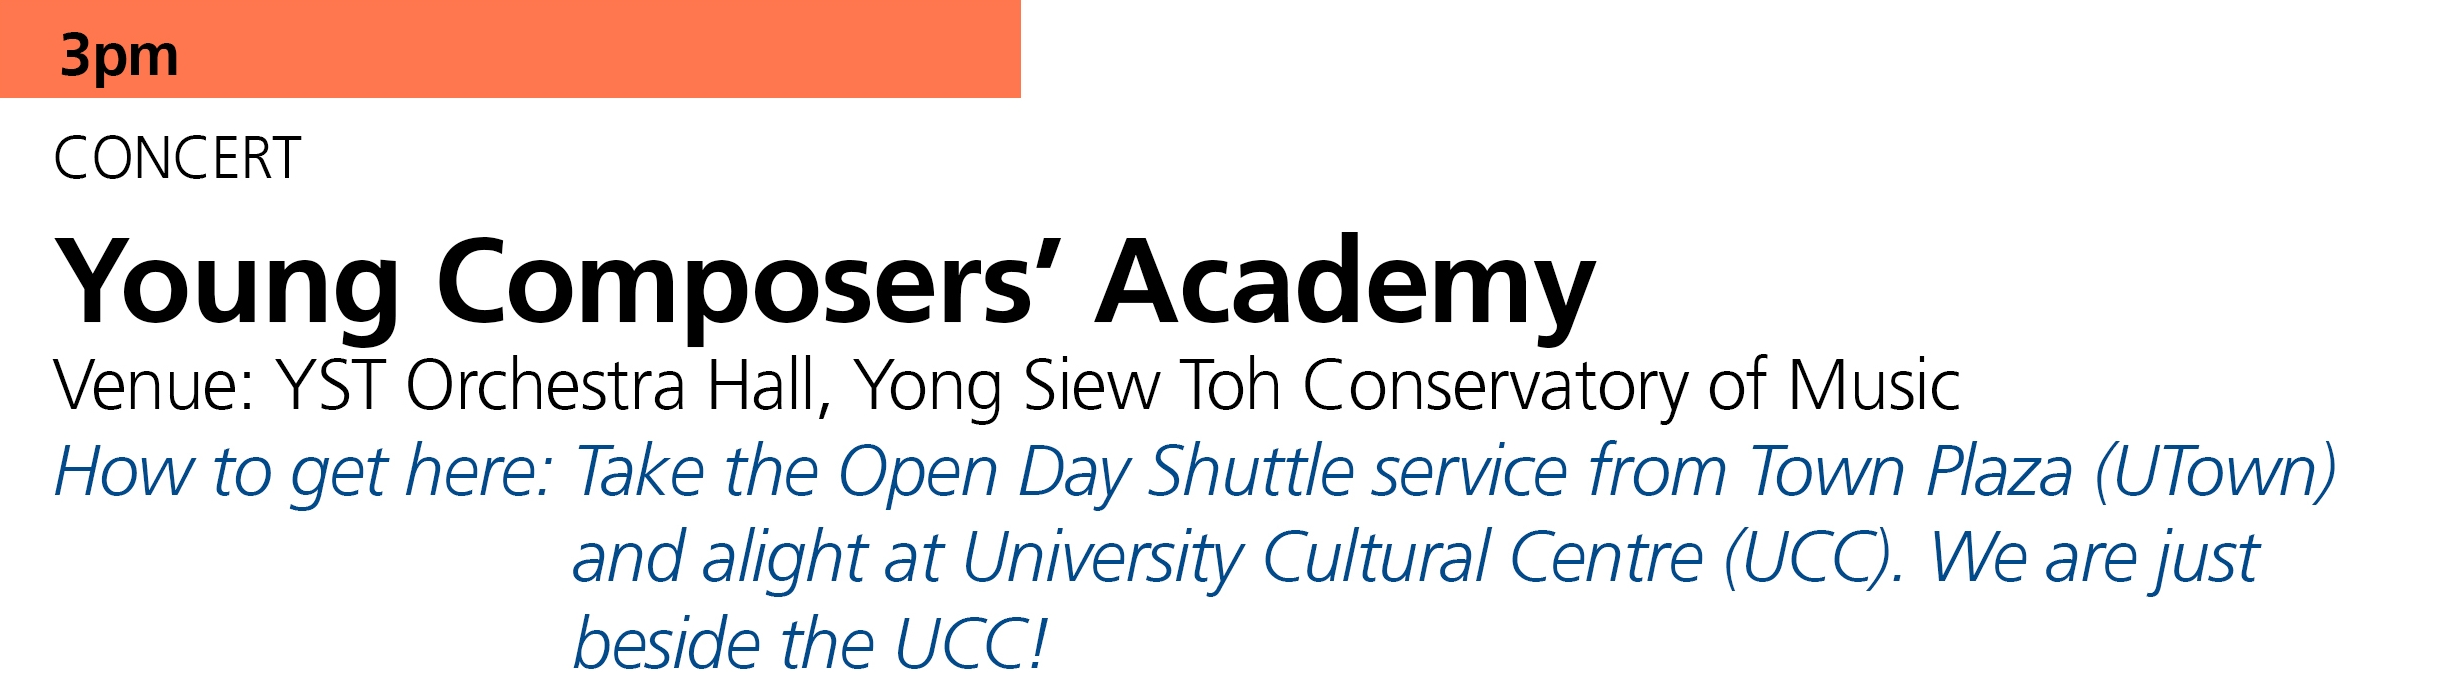 Members of OpusNovus and Wu Xian contemporary music ensembles perform the world premieres of          new works by participants in the  YST Young Composers' Academy (YCA) .